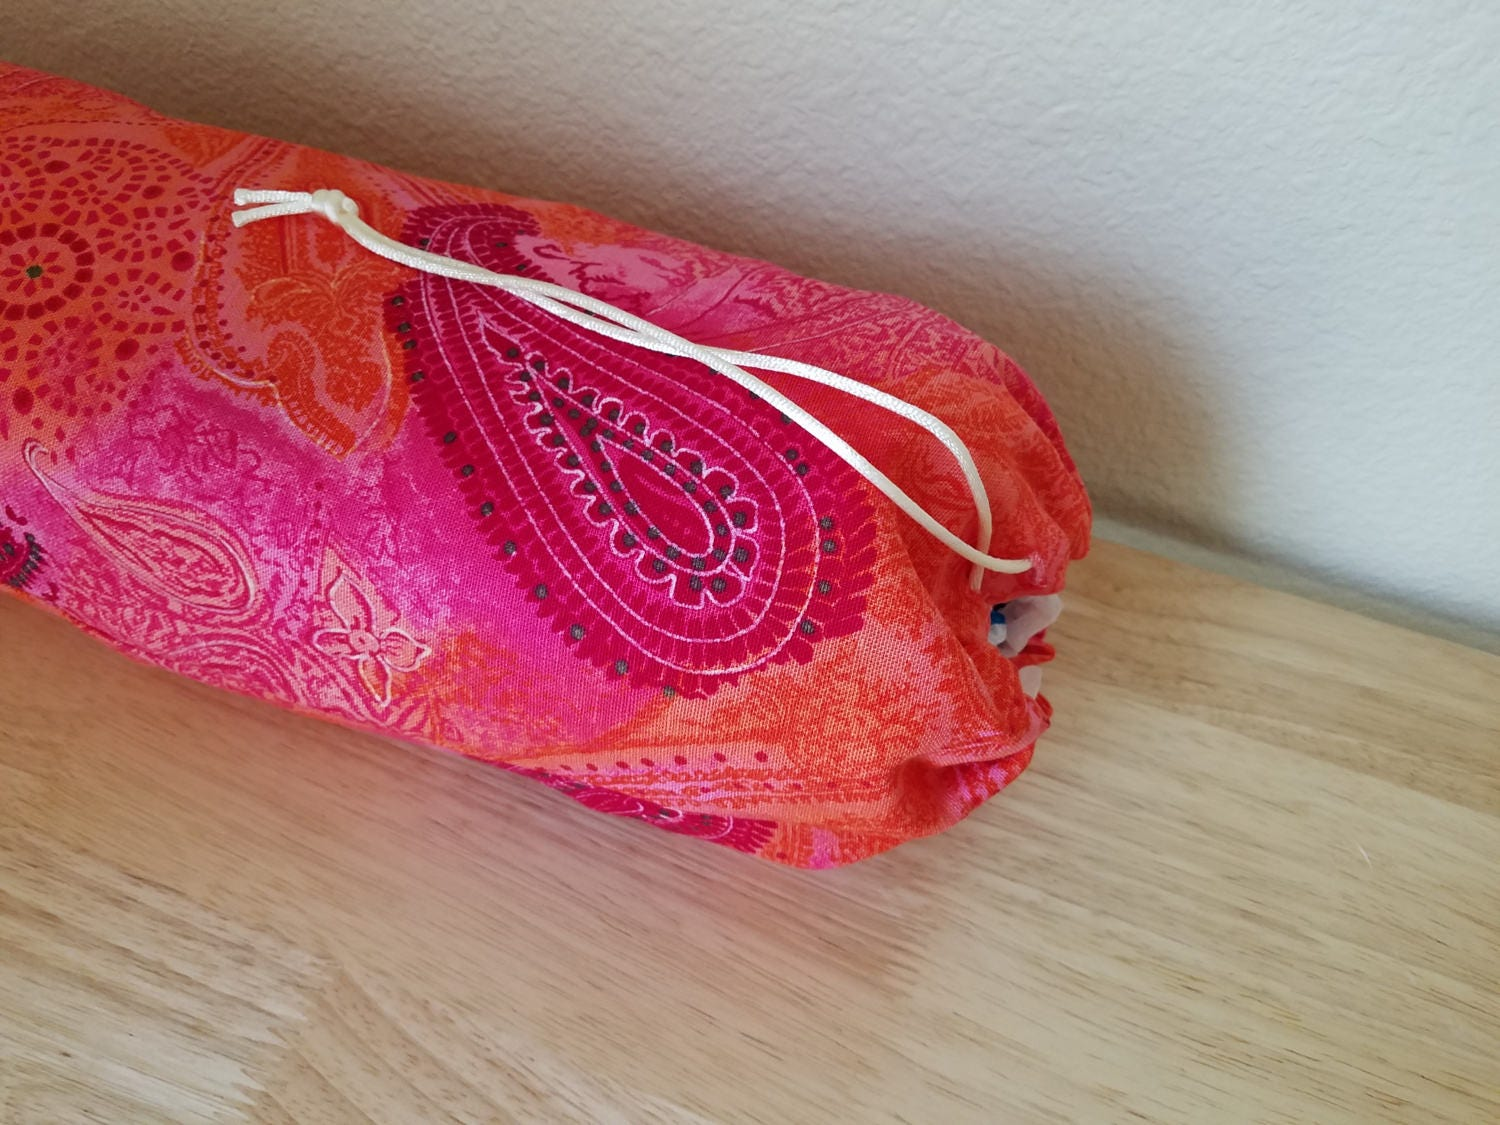 Plastic bag keeper - Punky Pink Grocery Bag Holder Plastic Bag Holder Grocery Bag Keeper Plastic Bag Keeper Organizer